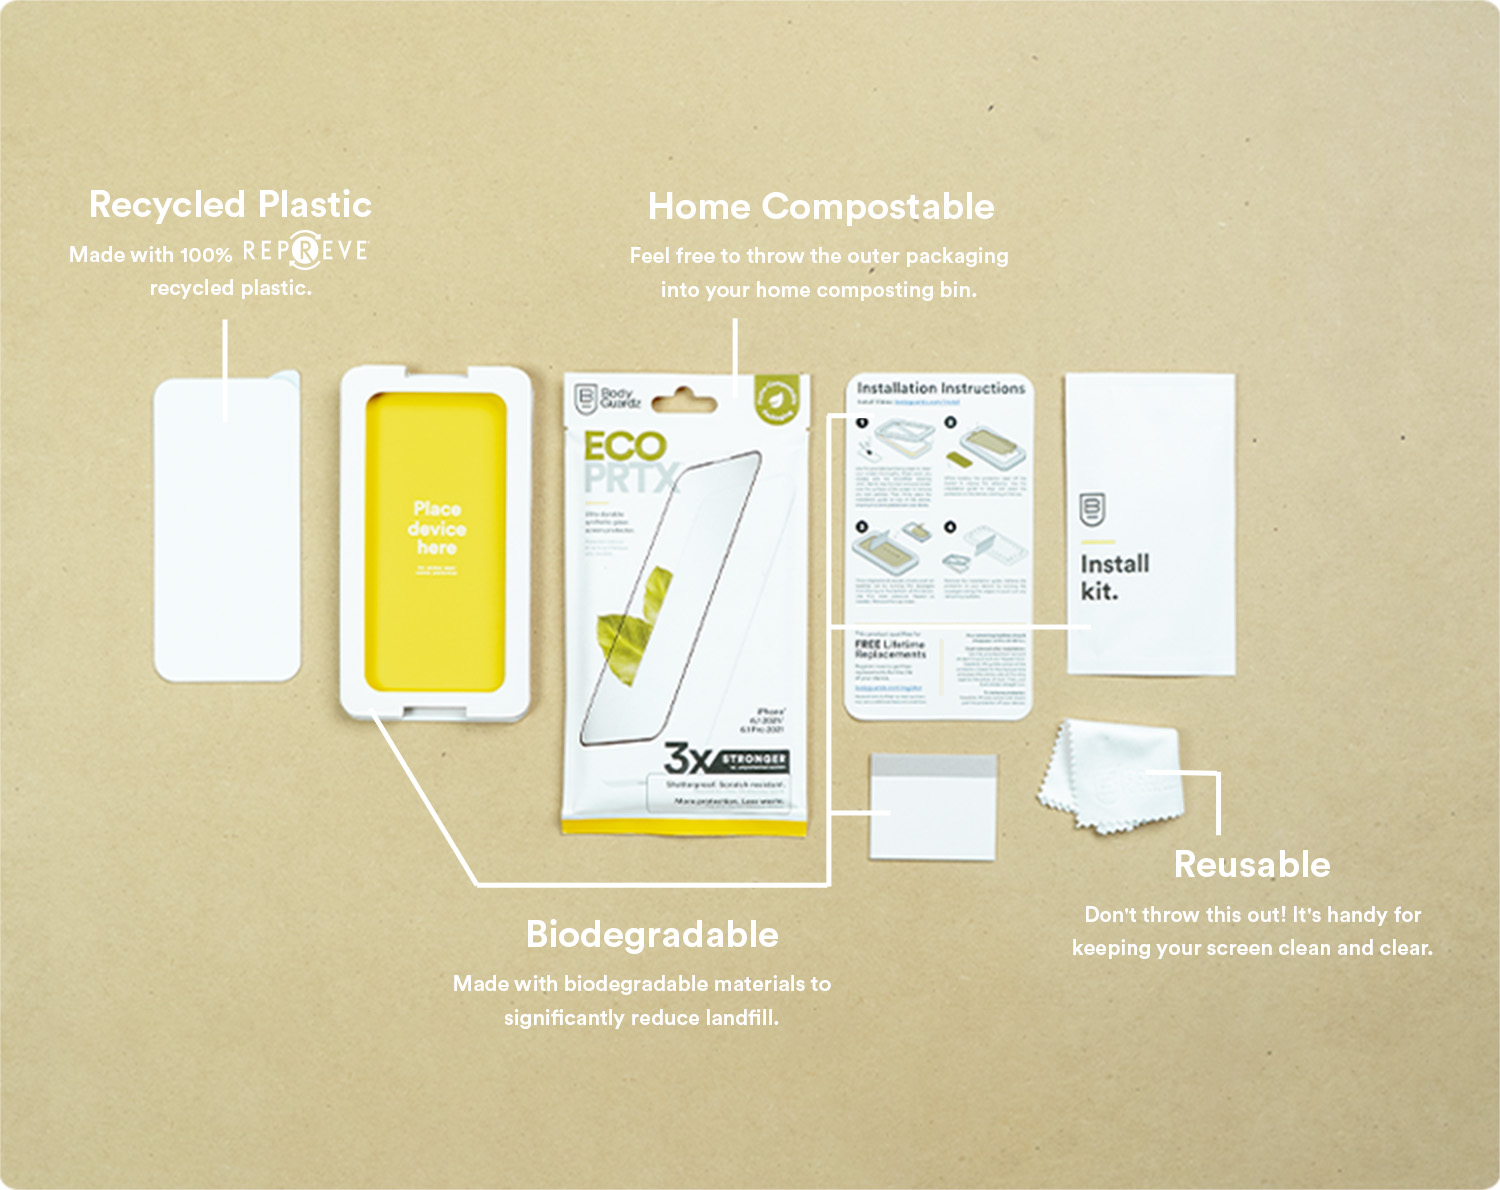 ECO PRTX uses responsible, eco friendly packaging.